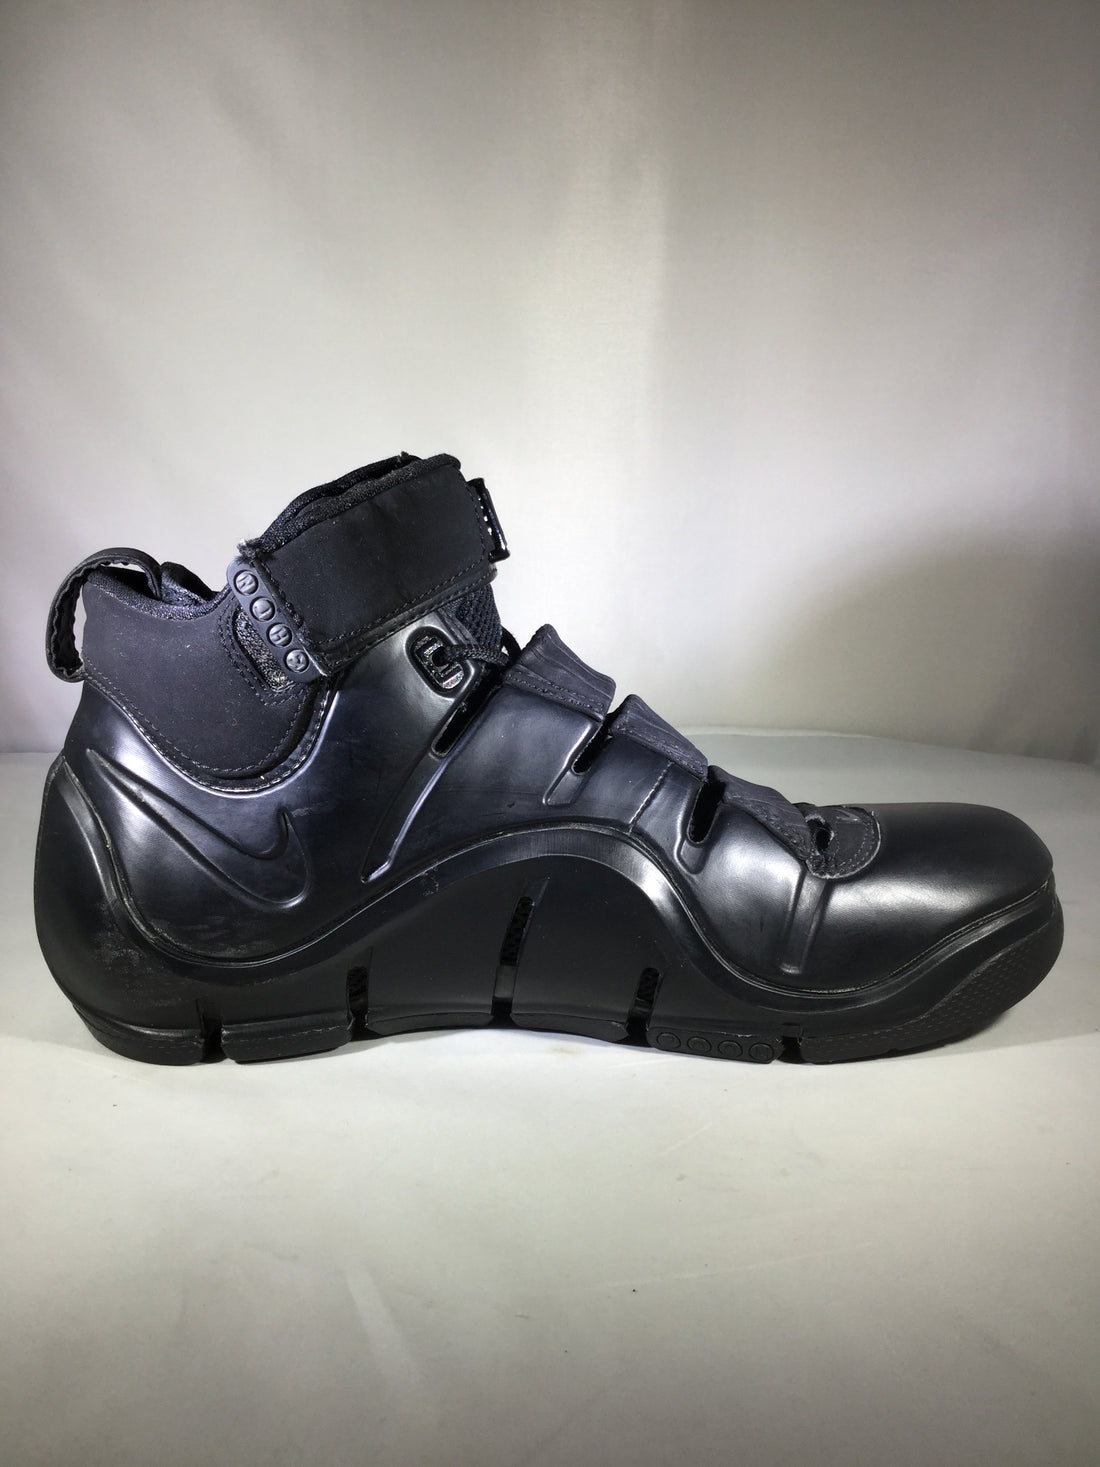 "Lebron 4 ""East Coast Blackout"" - 314647-001"